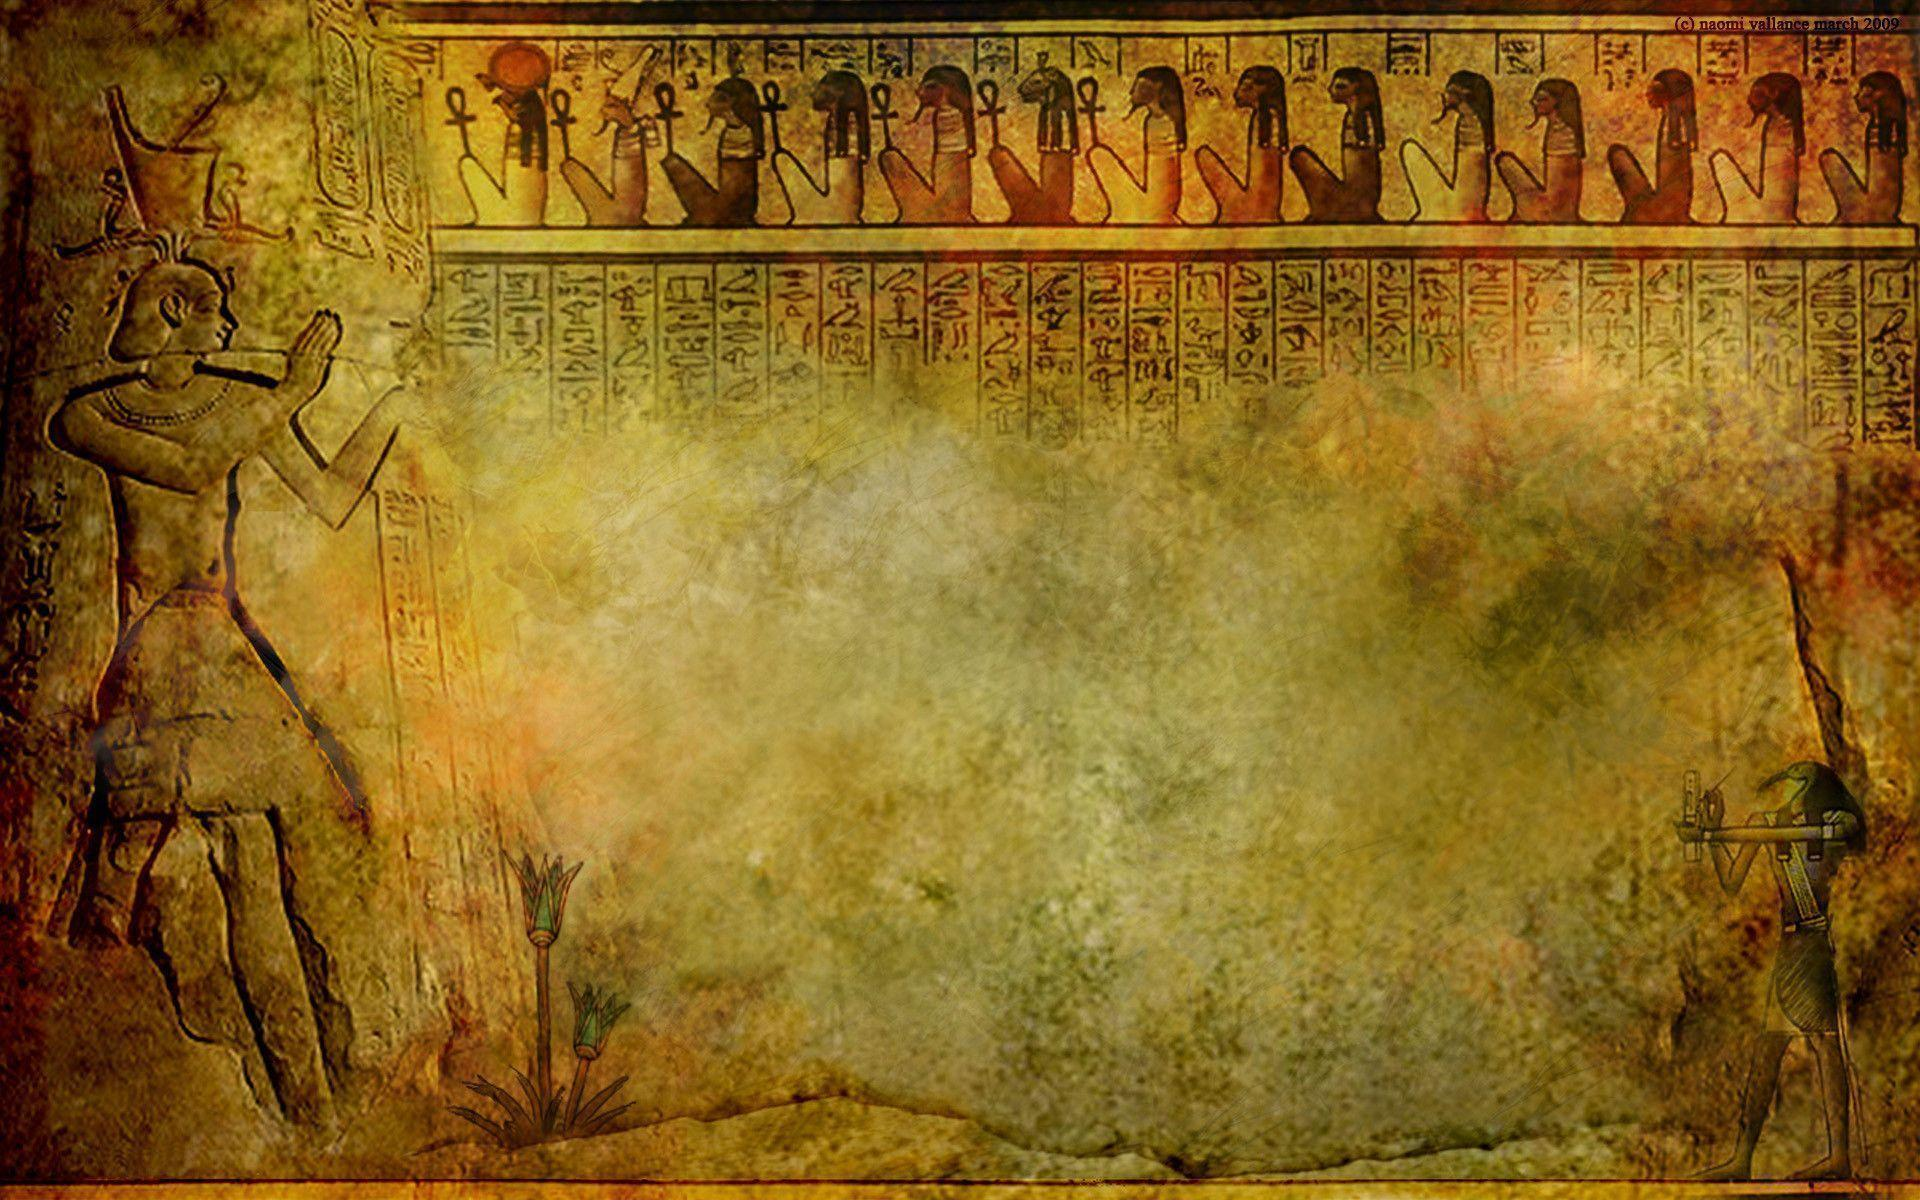 a thesis sentance for acient egyptian art